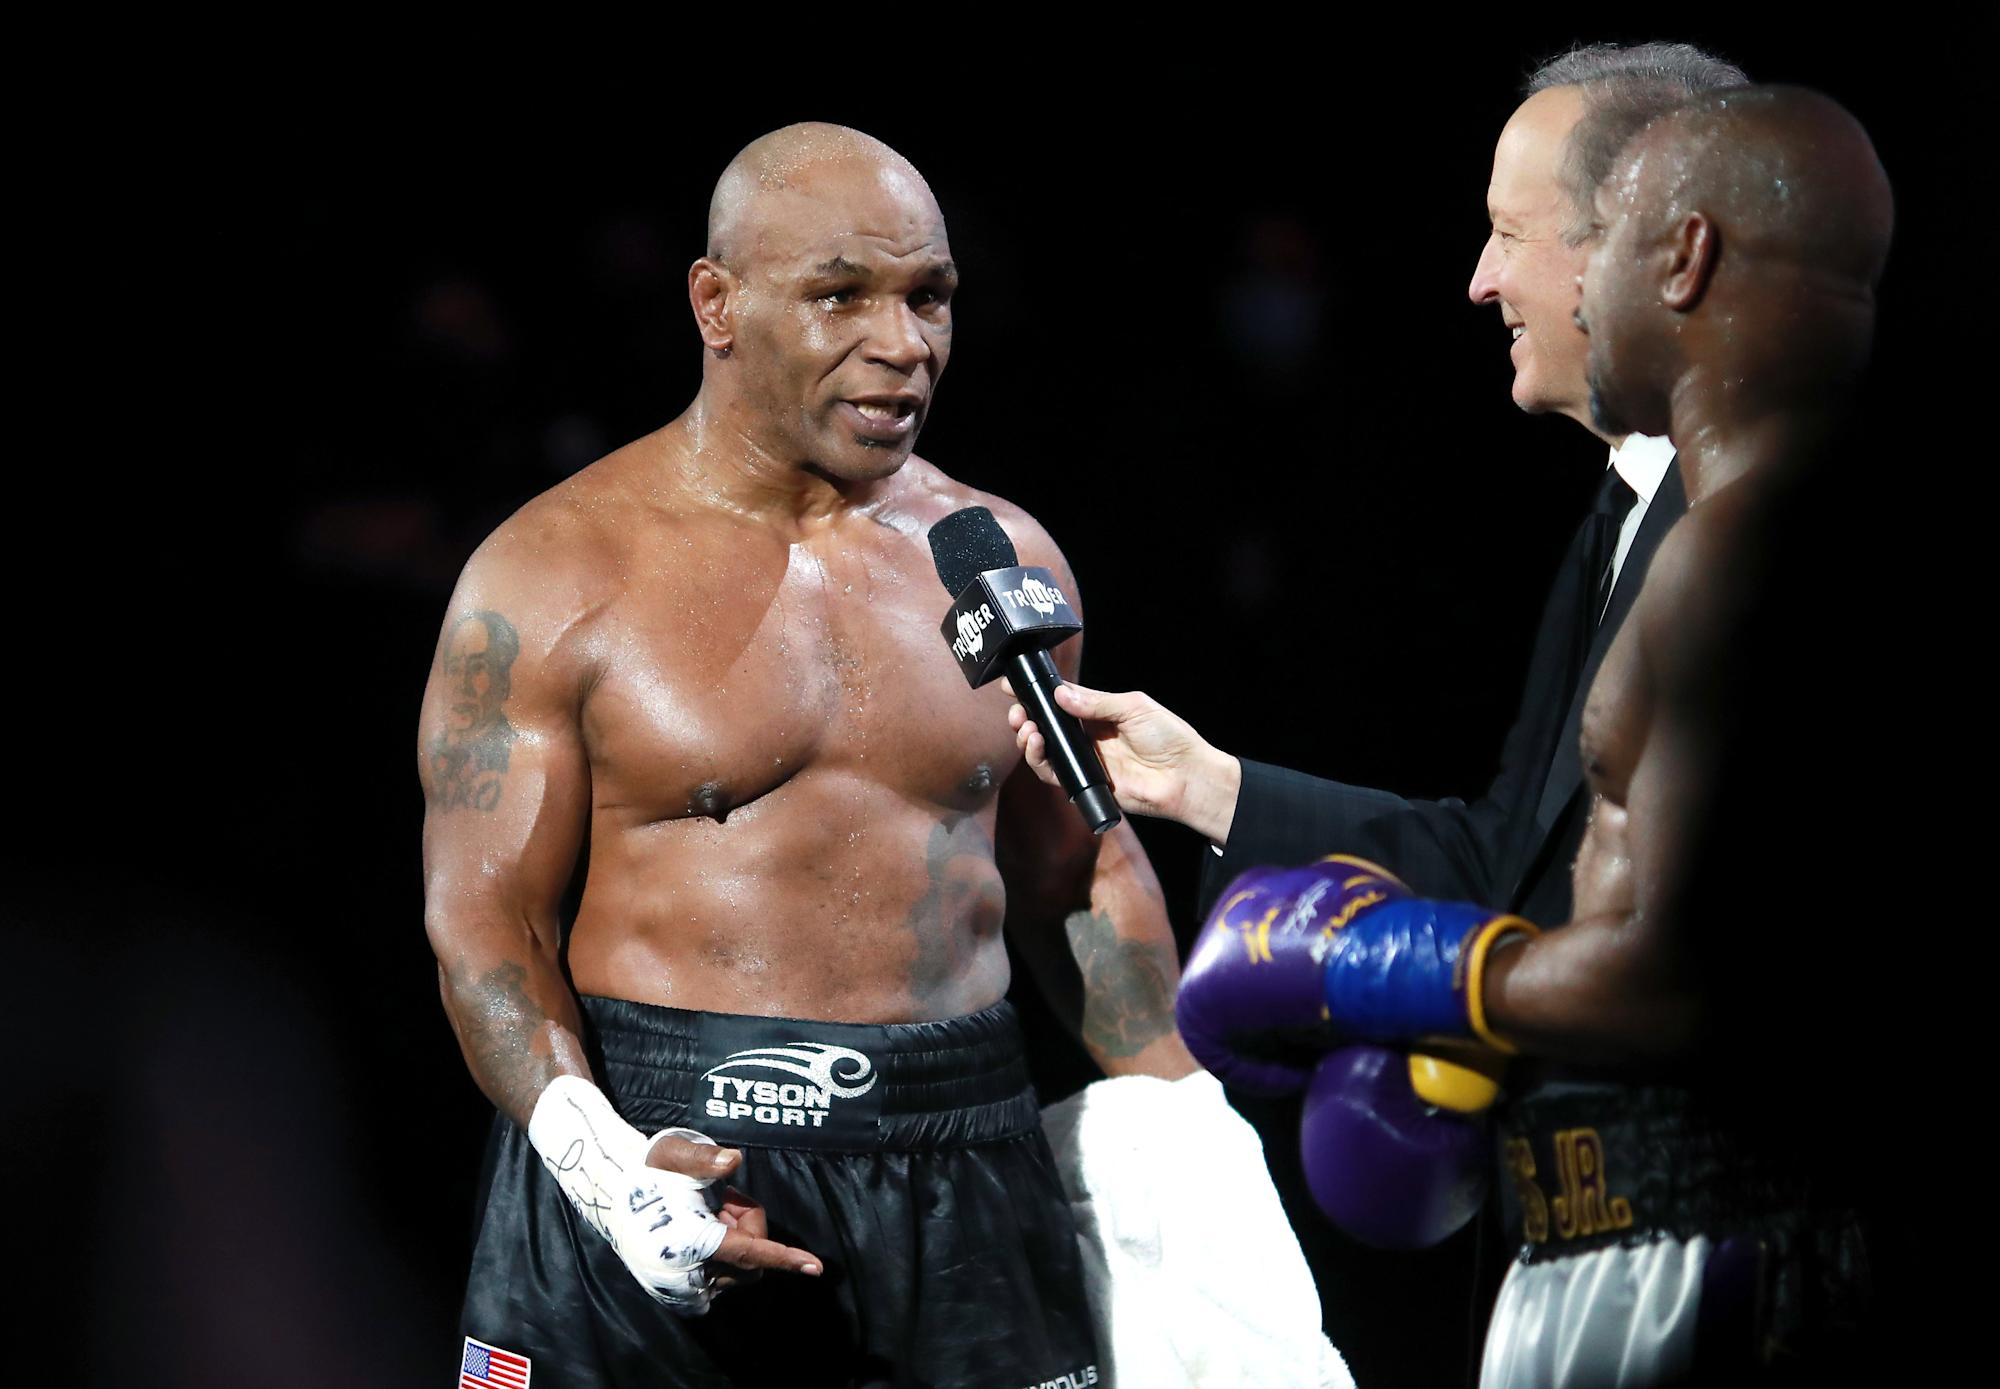 Mike Tyson smoked weed before and after his exhibition bout with Roy Jones Jr. - Yahoo Sports